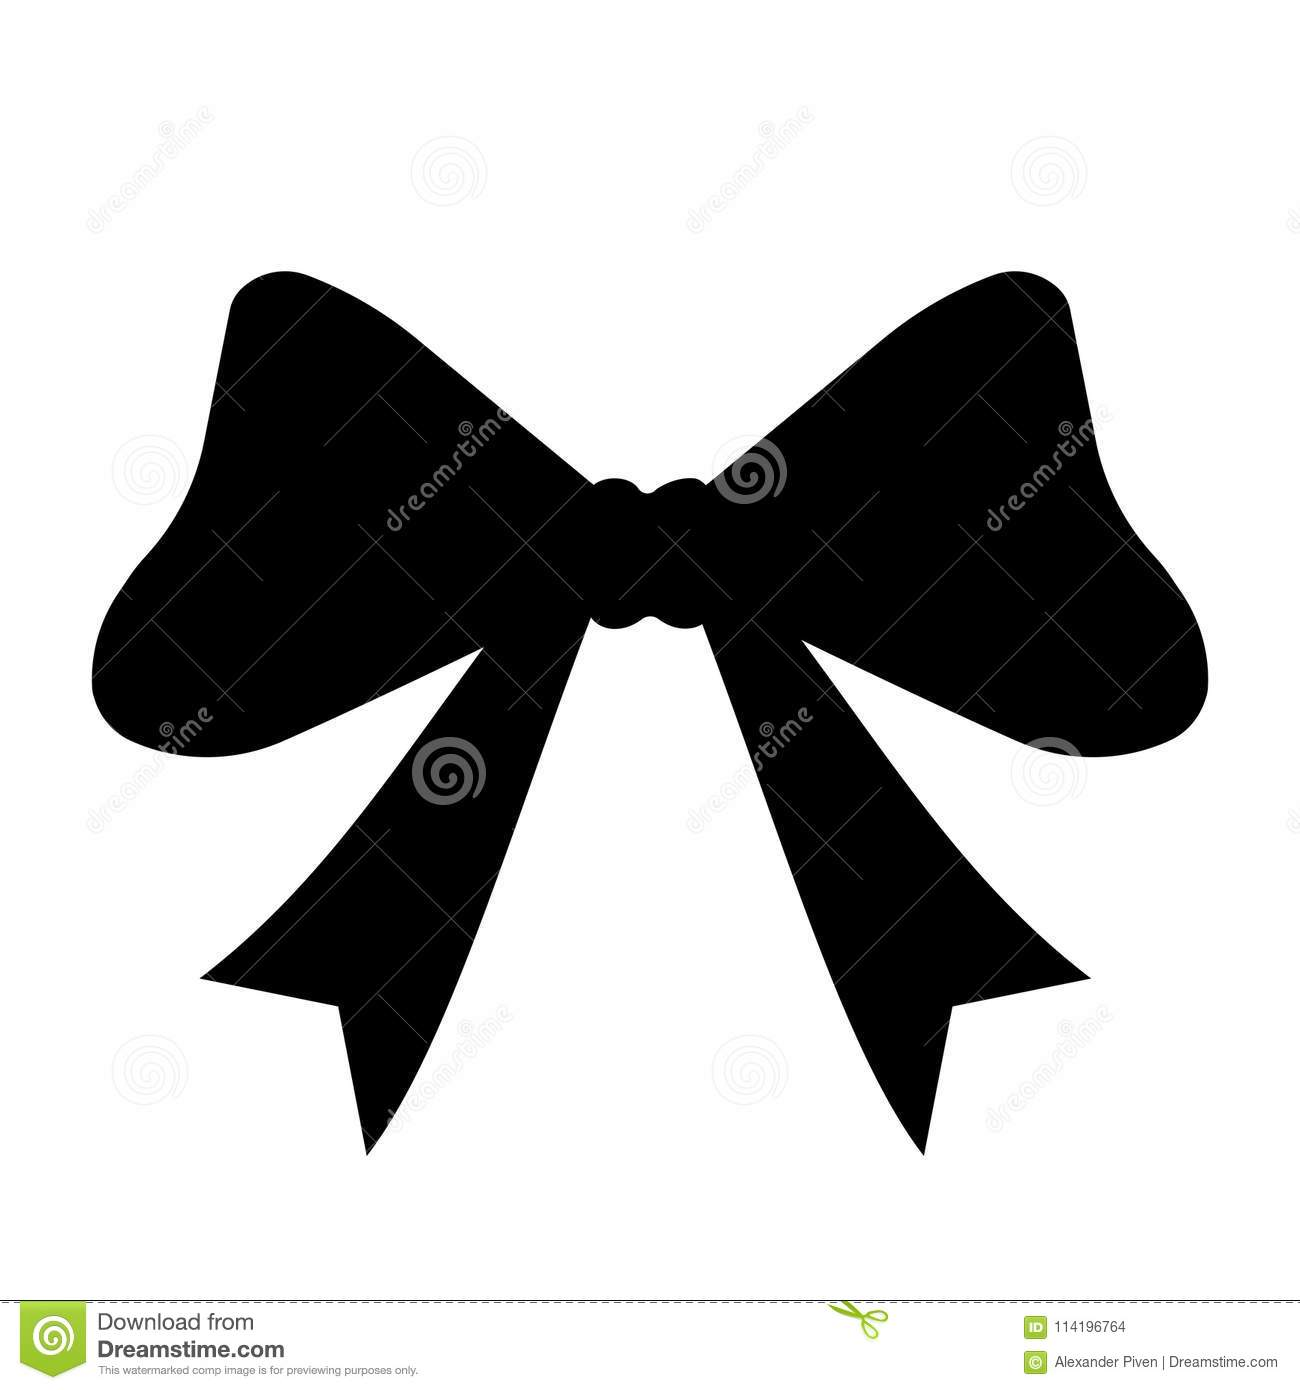 black silhouette gift bows concept for invitation banners gift